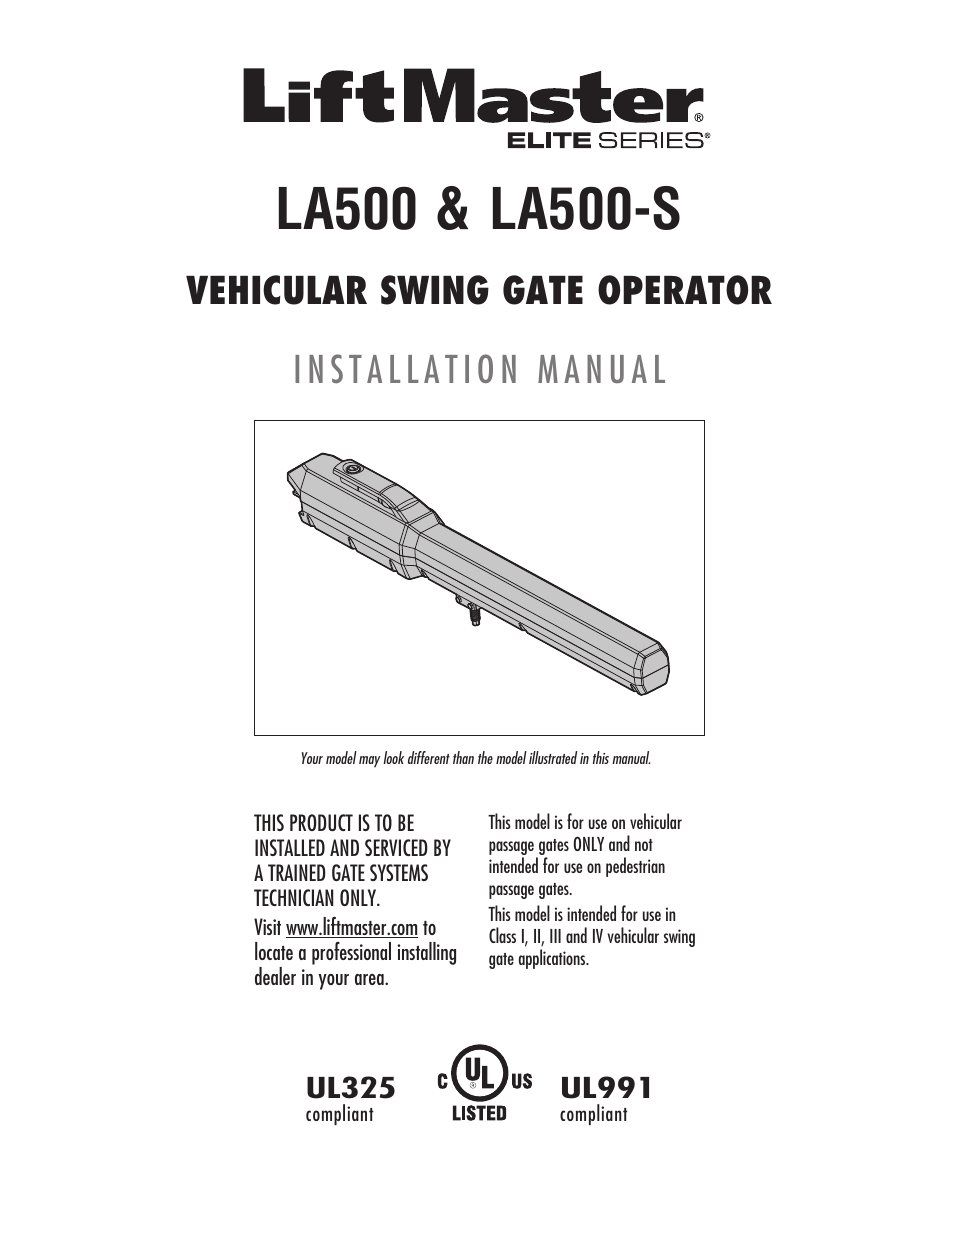 Liftmaster La500 Residential Light Commercial Swing Gate Operator Openner Schematics User Manual 52 Pages